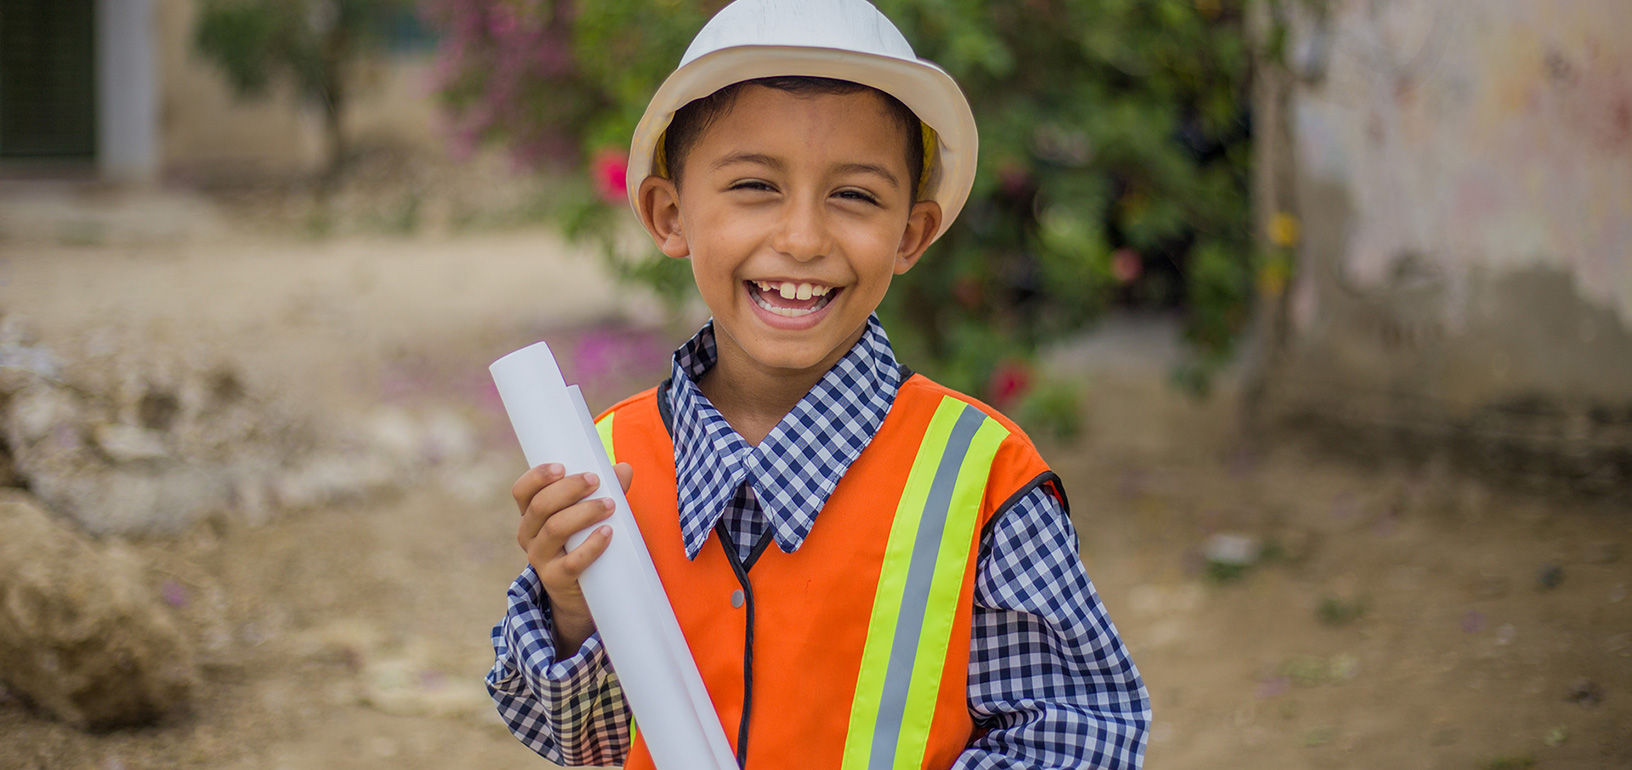 Santiago wants to be a civil engineer